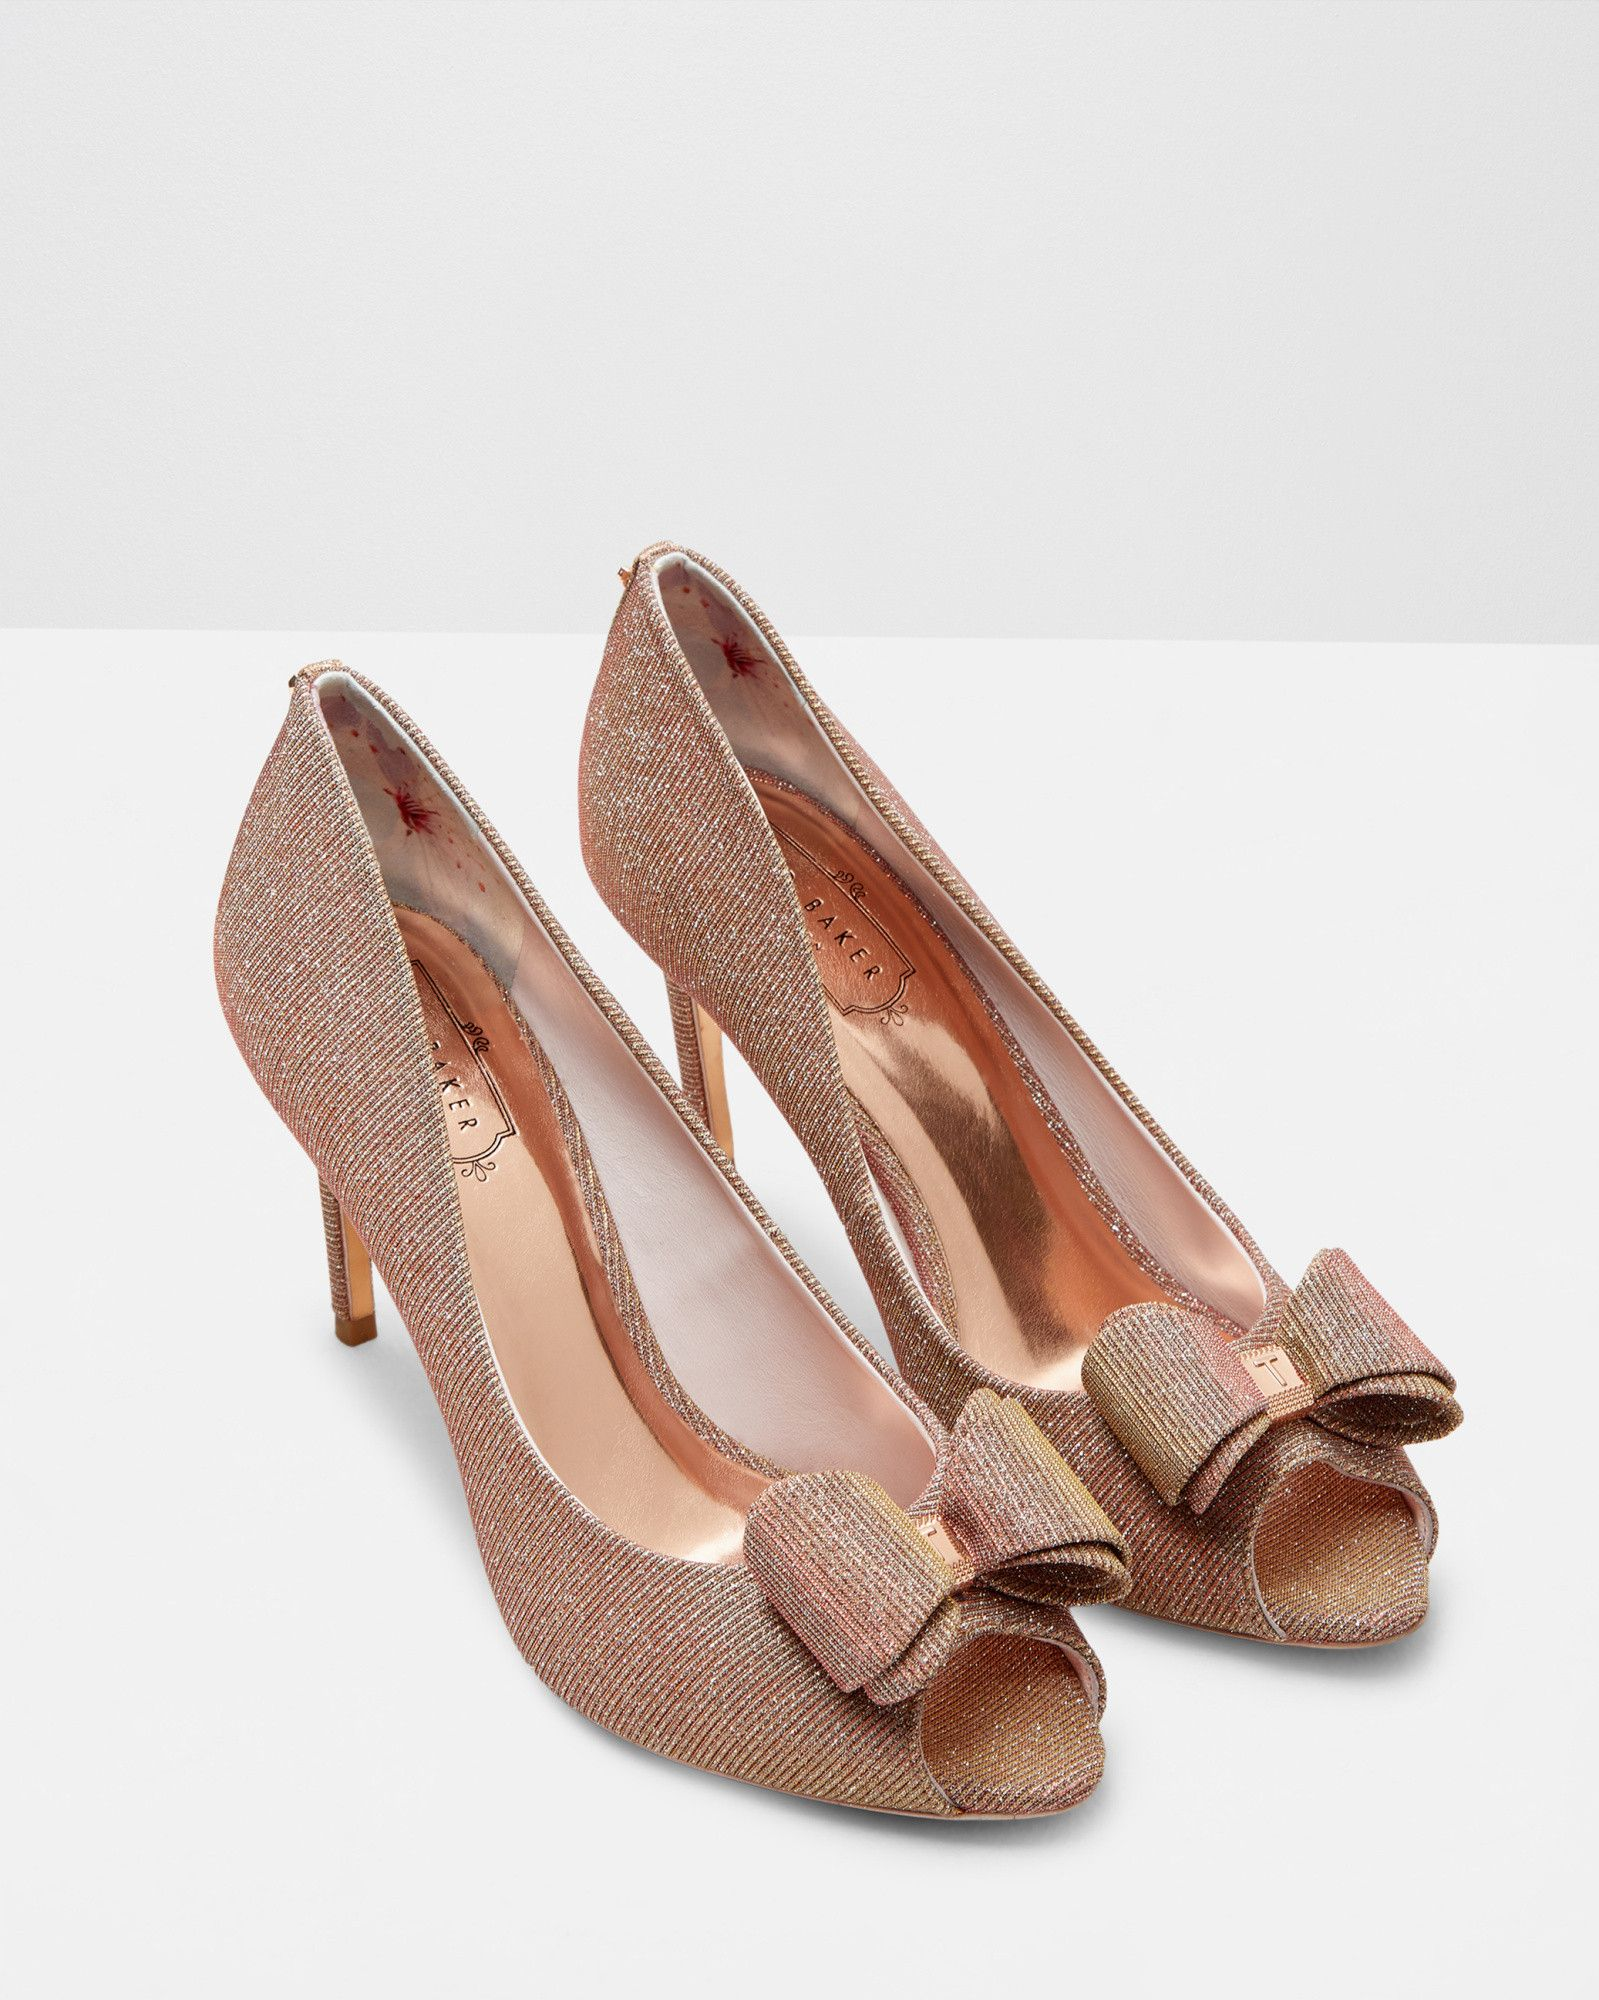 Bow Detail Peep Toe Courts Rose Gold Shoes Ted Baker Uk Womens Designer Accessories Rose Gold Shoes Bridal Shoes